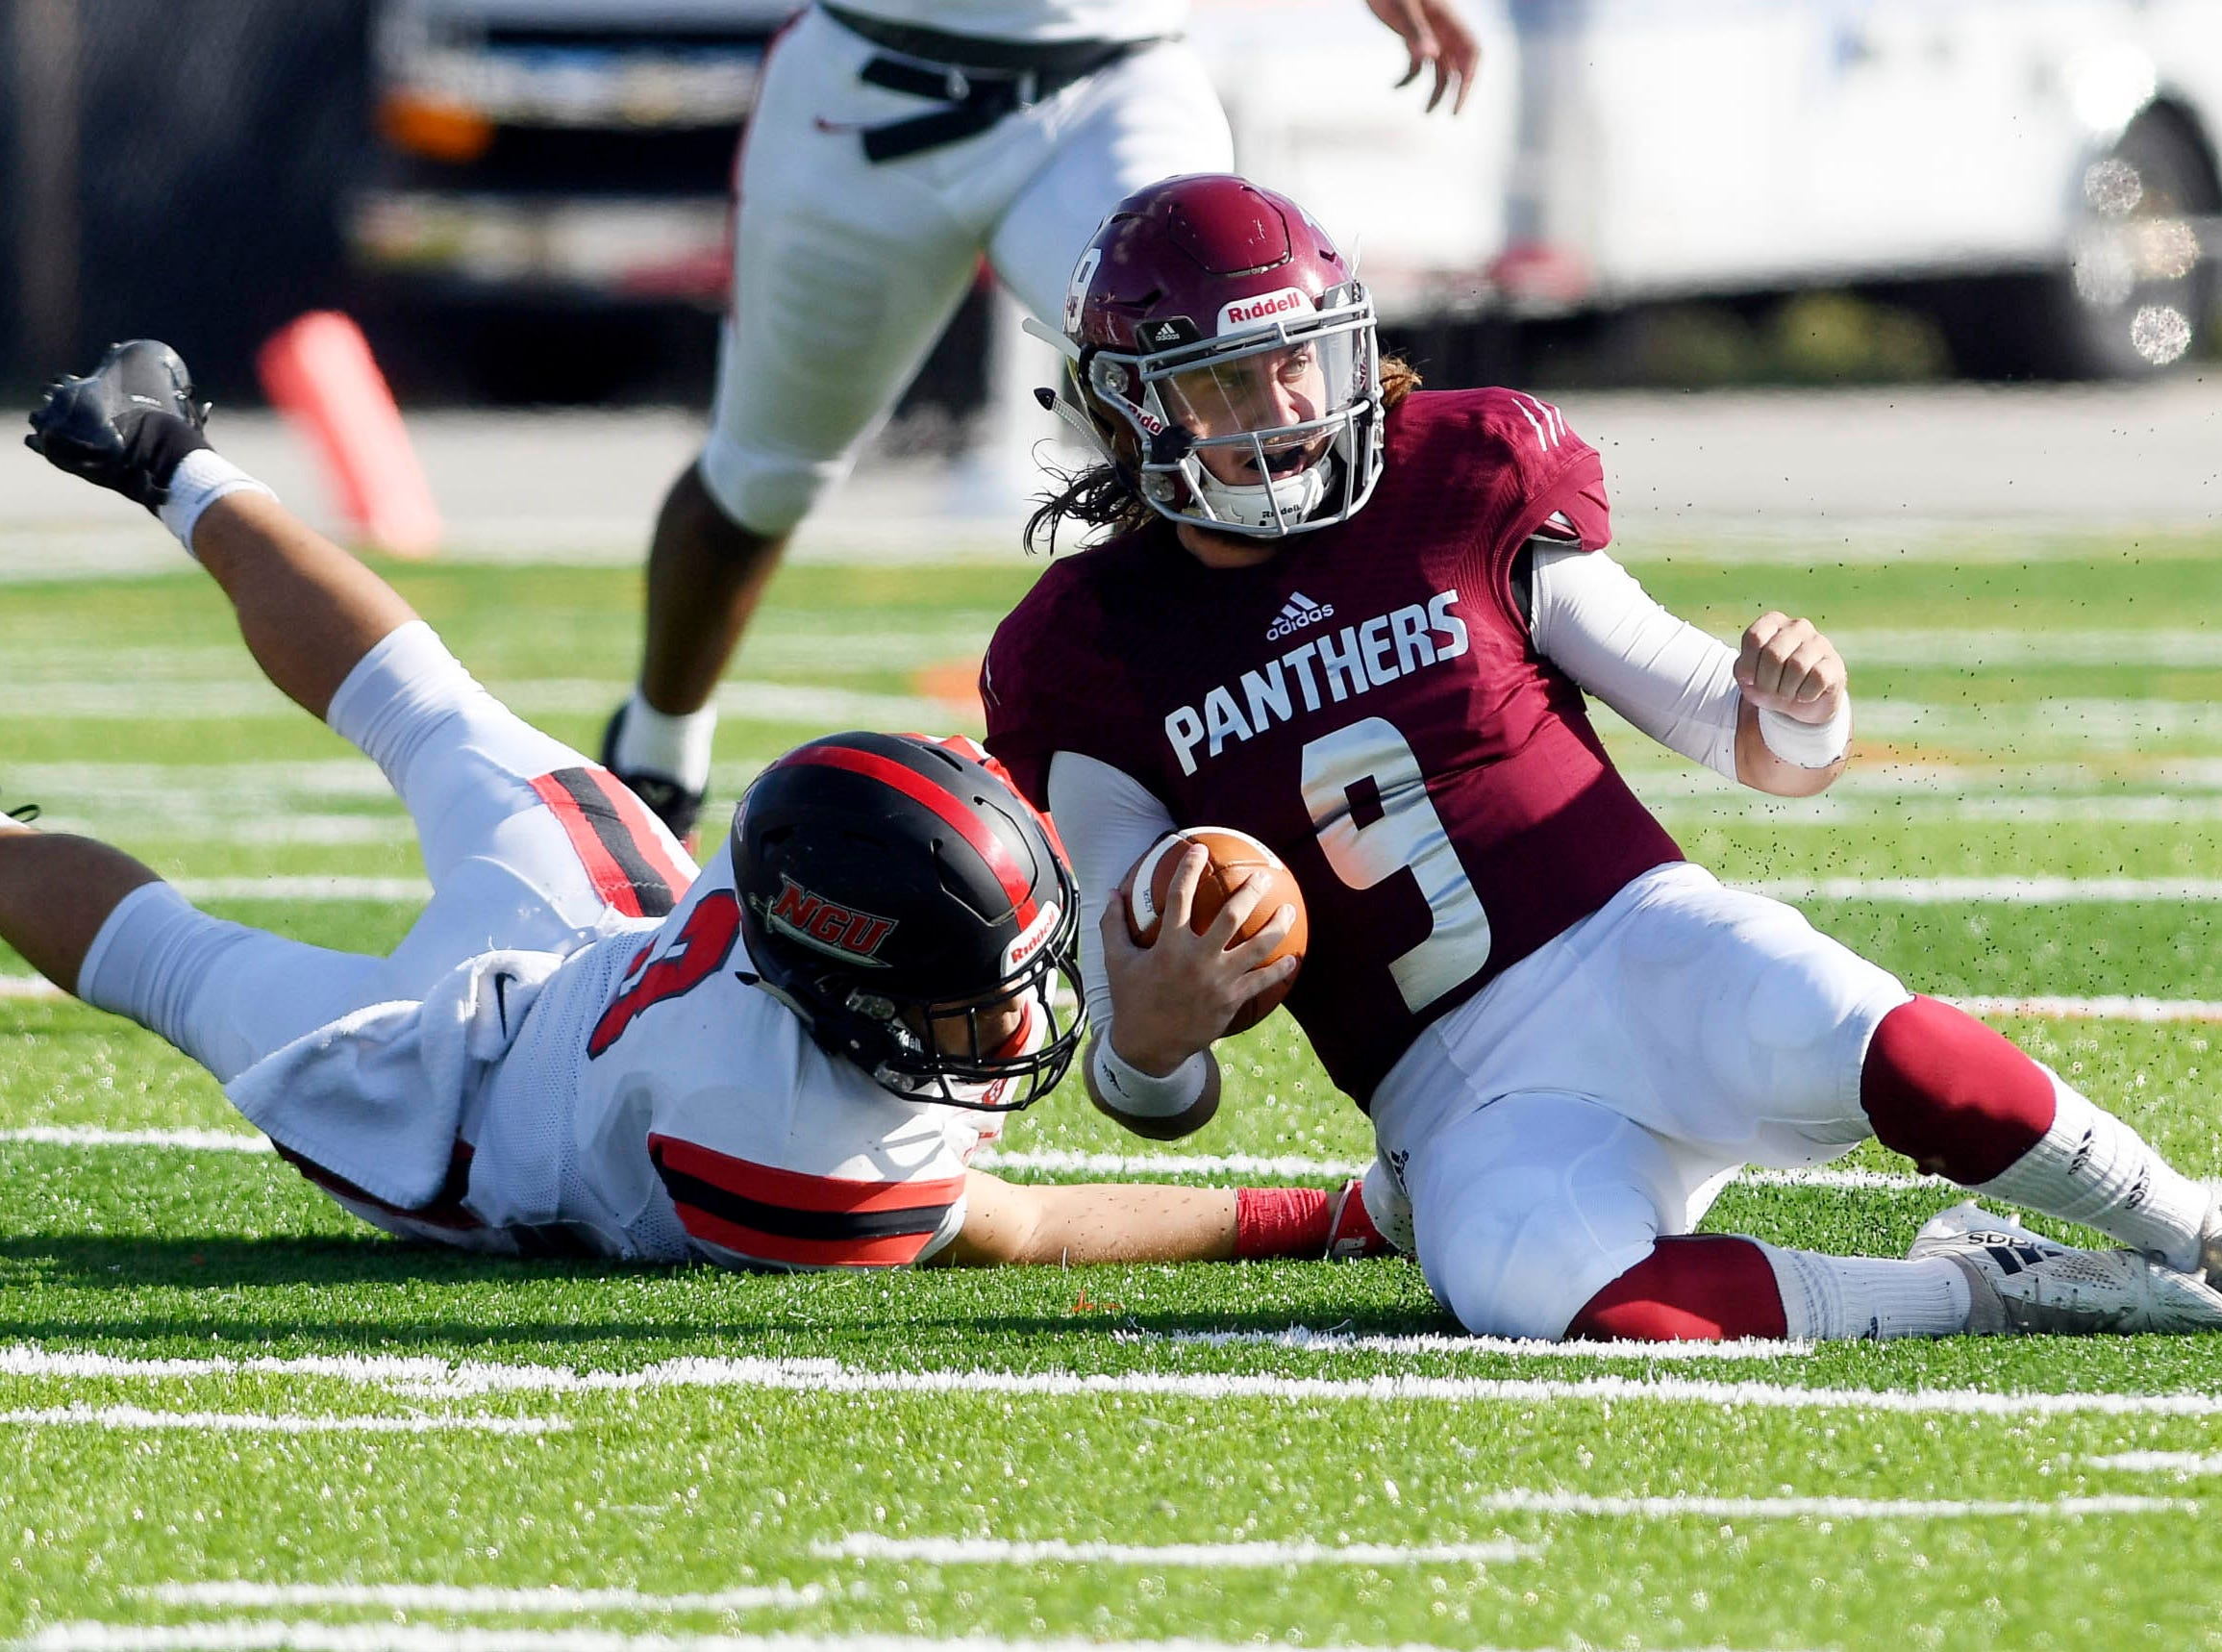 Florida Tech QB Trent Chmelik slides to a stop before North Greenville's Matthew Thomas can make the tackle during Saturday's game.